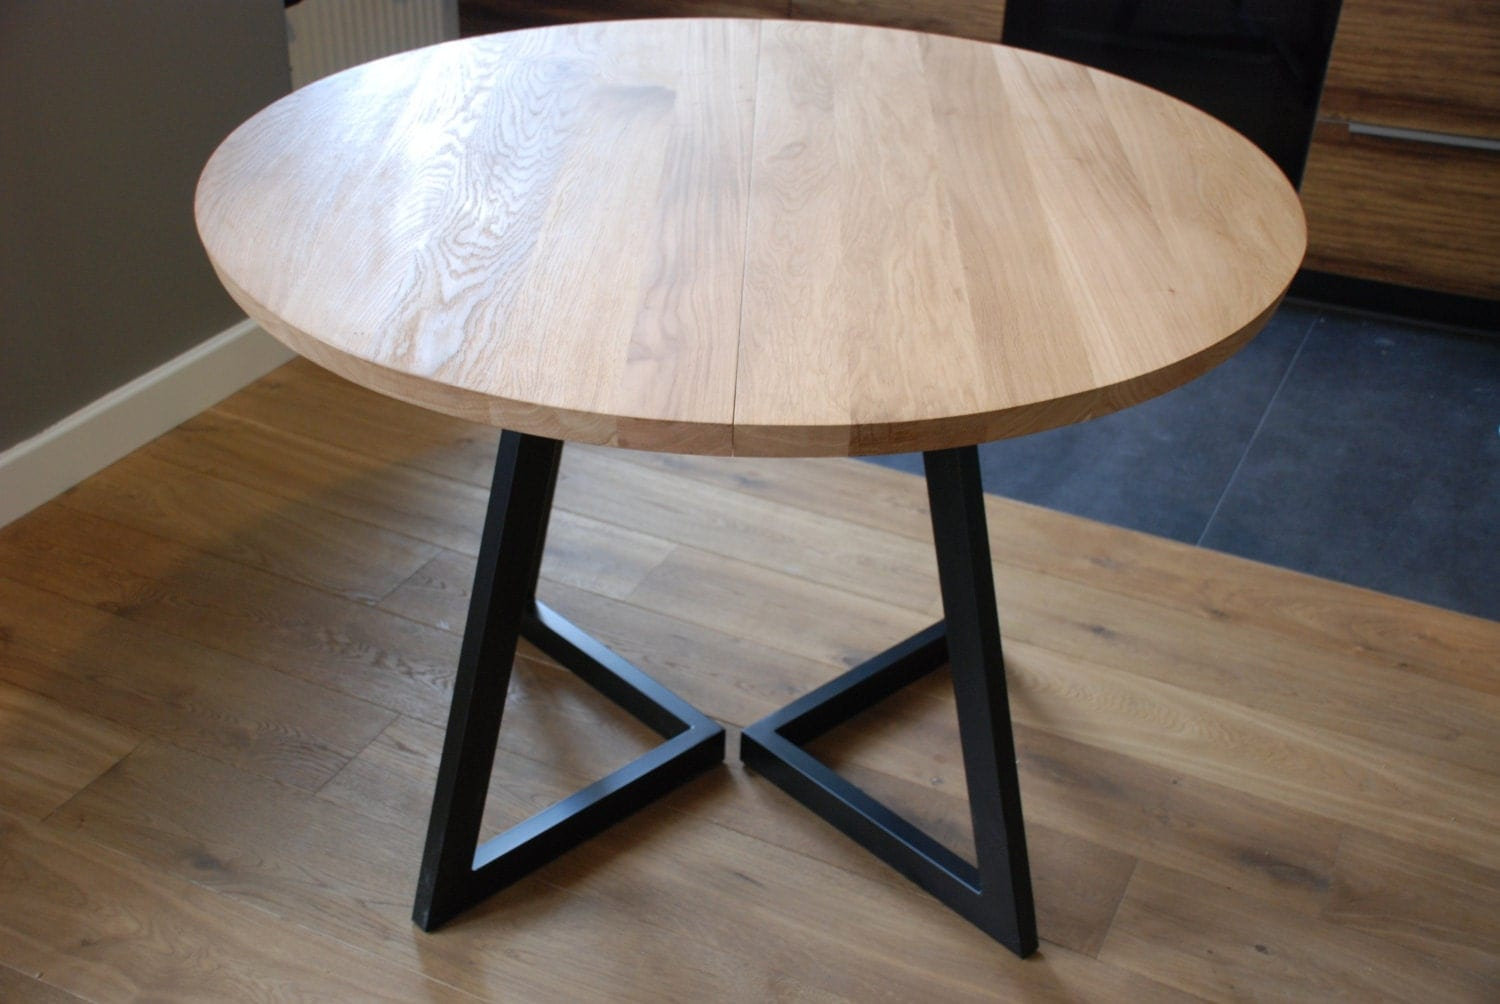 Bois et table ronde rallonges design moderne en acier - Table rallonge design ...